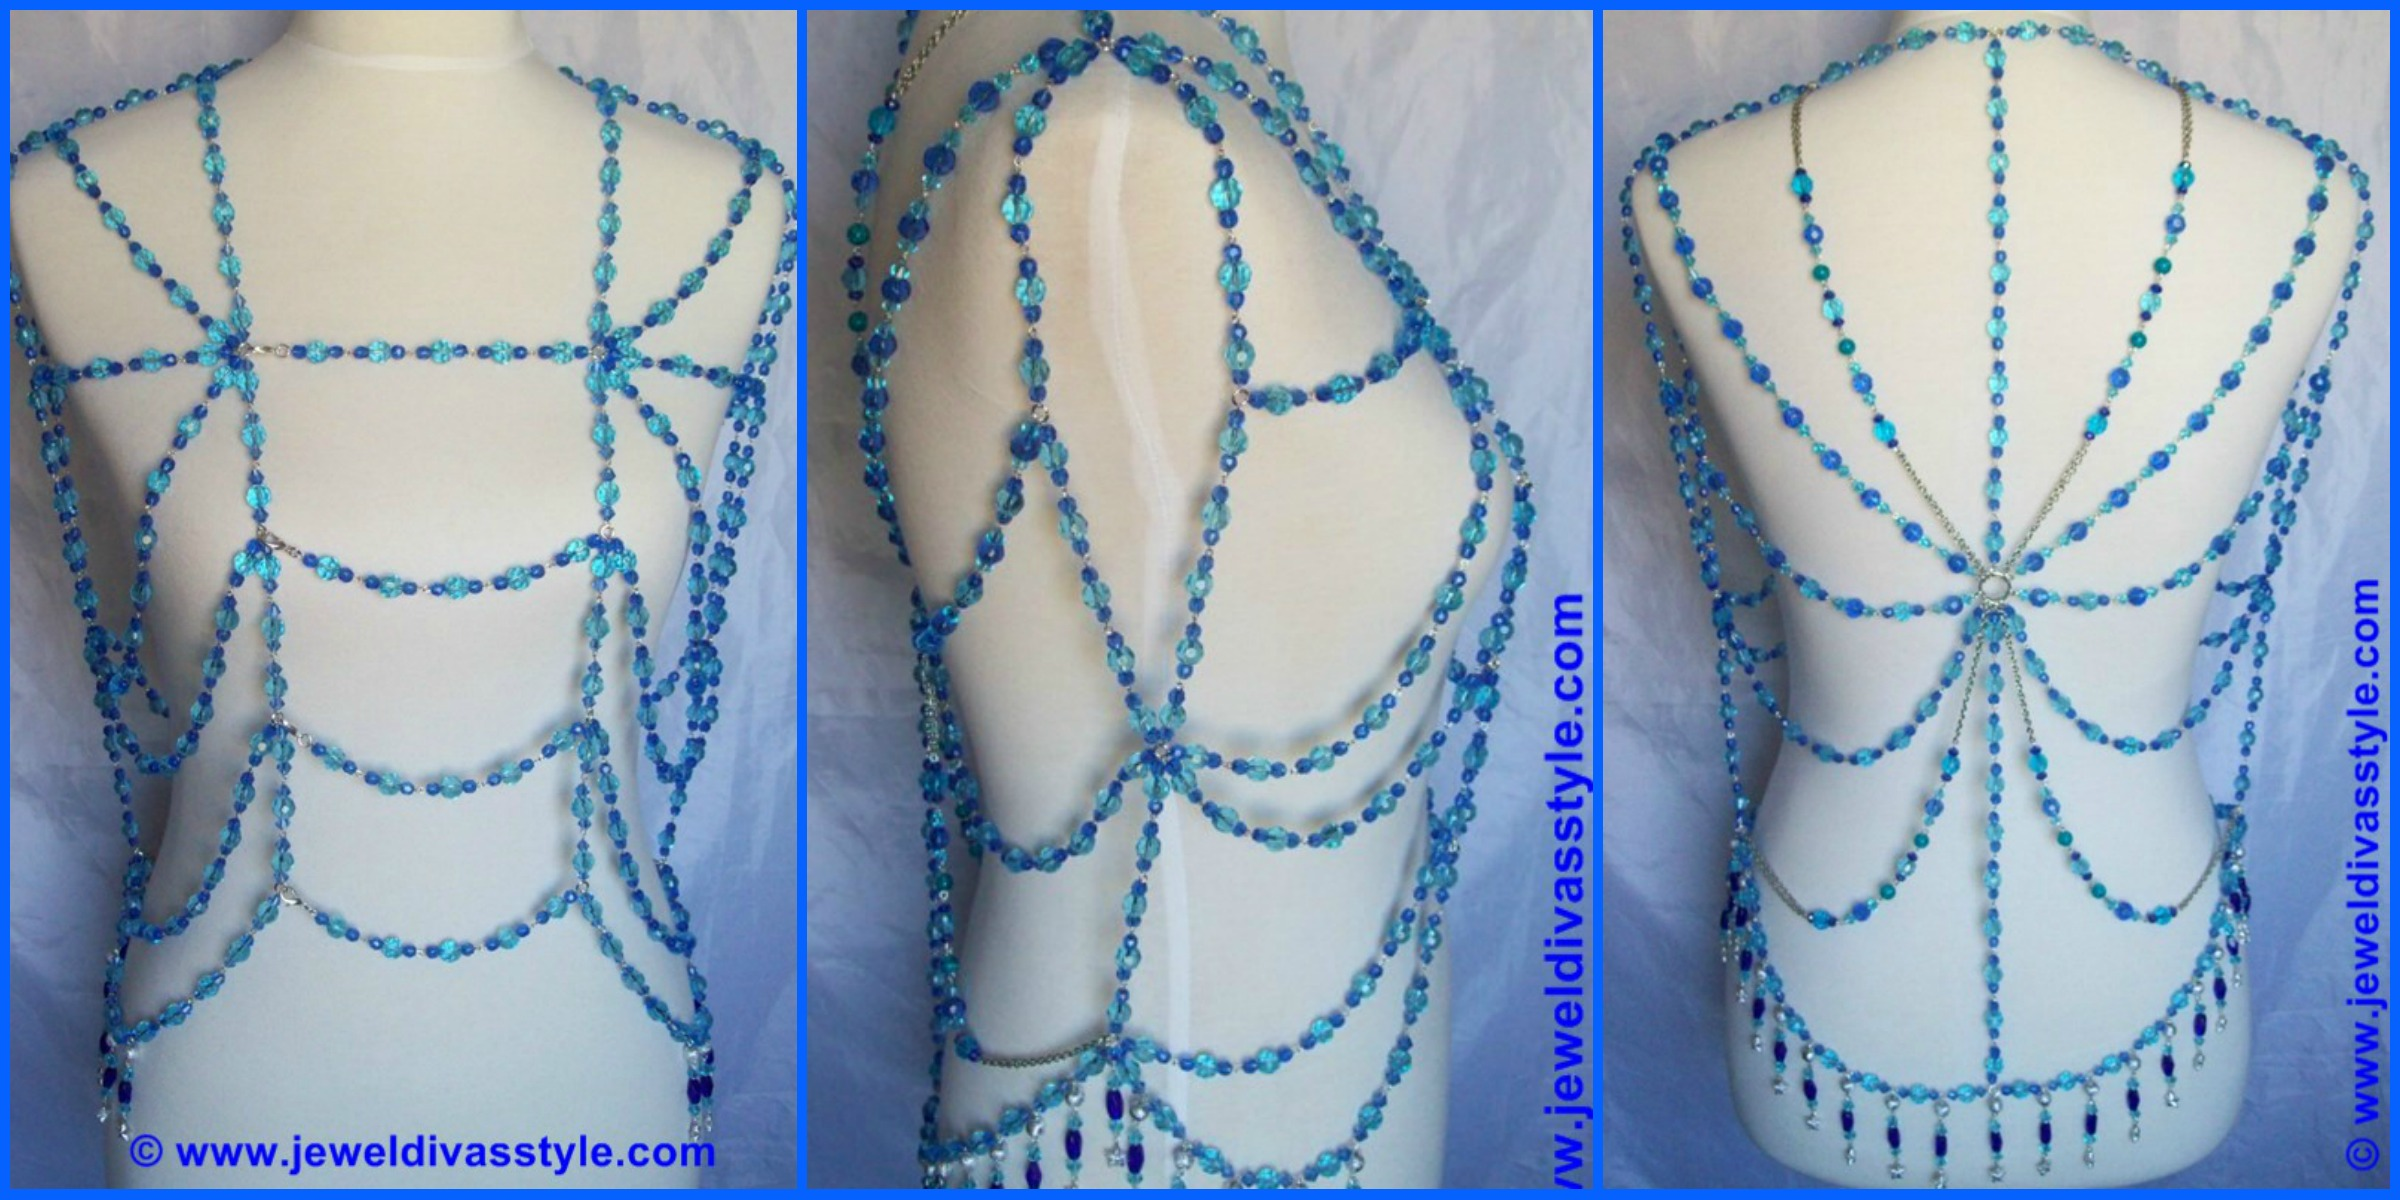 JEWEL DIVAS BLUE VELVET BODY VEST COUTURE